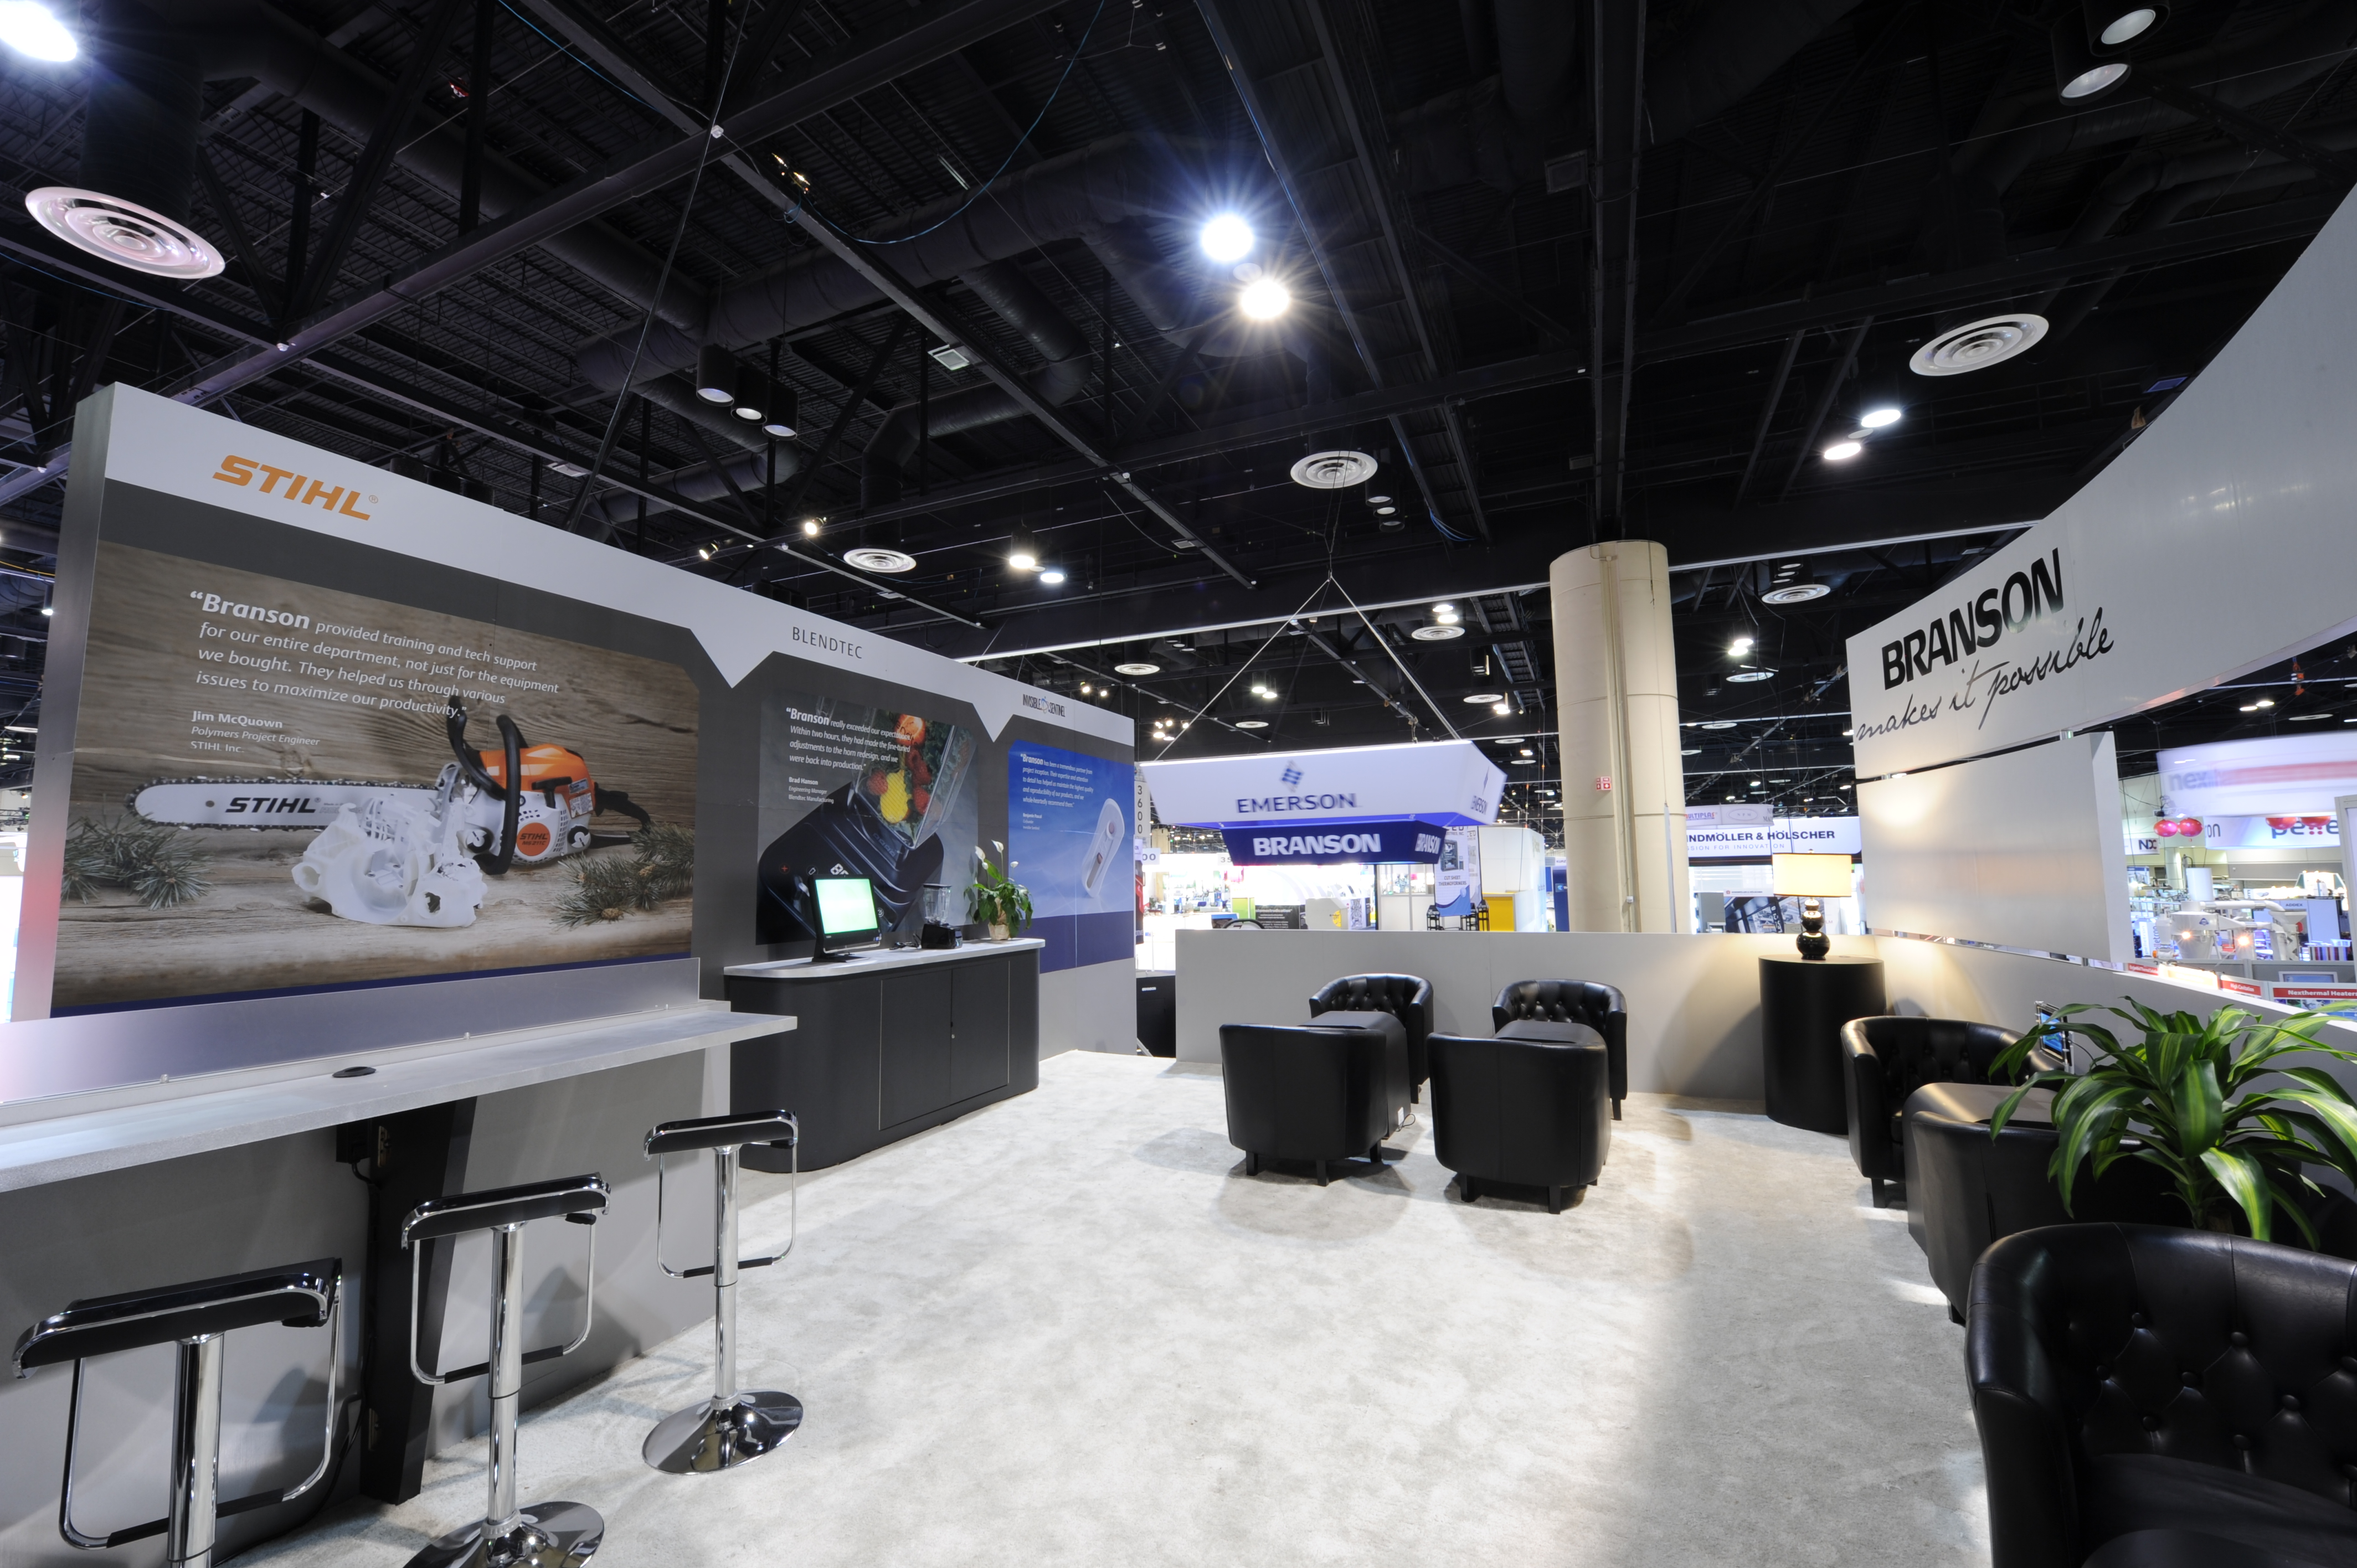 Expo Exhibition Stands Zone : Exhibition booth designs trade show booth displays